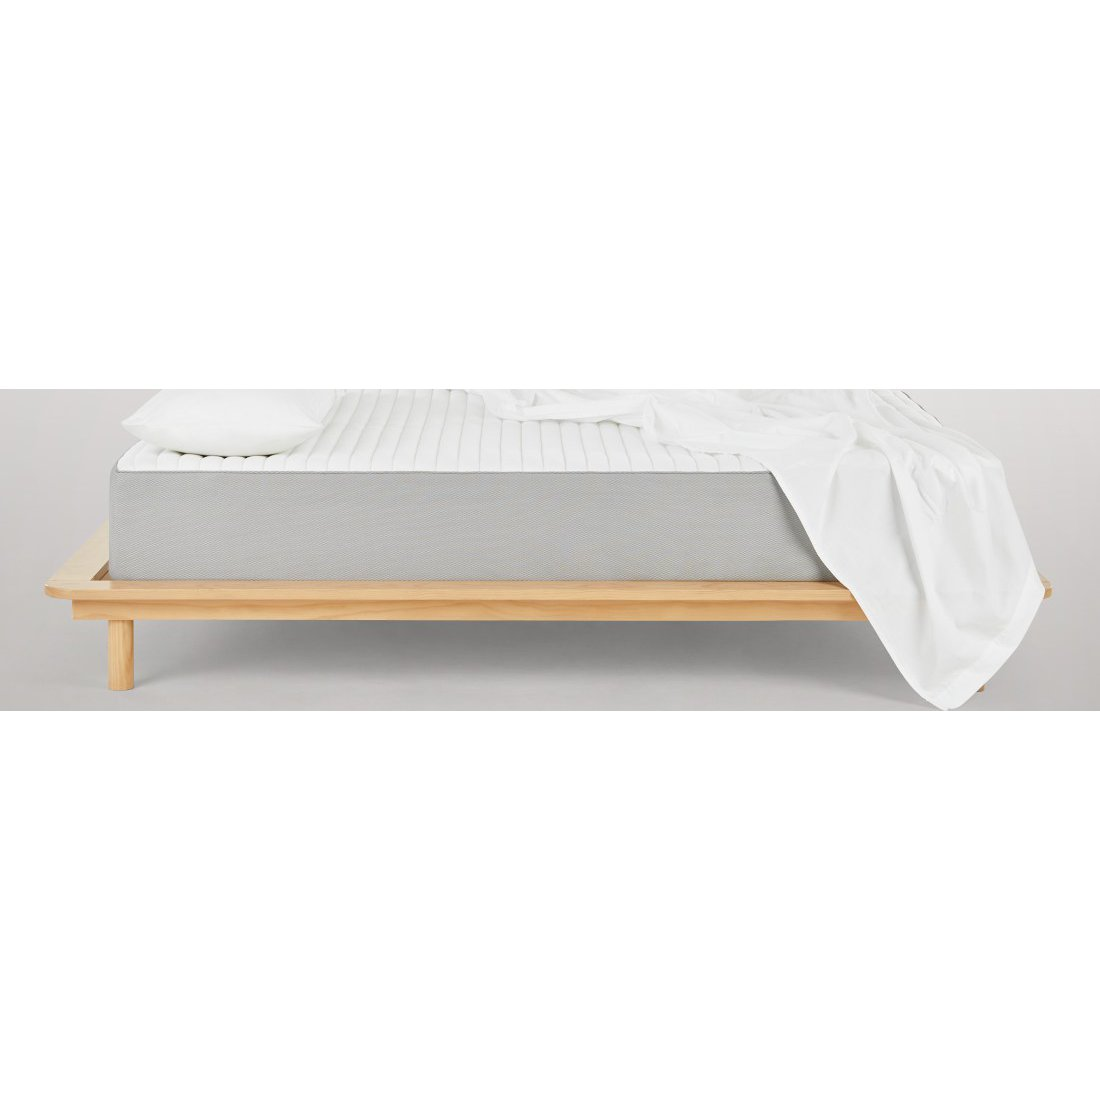 image-The Natural One, Mattress, Double